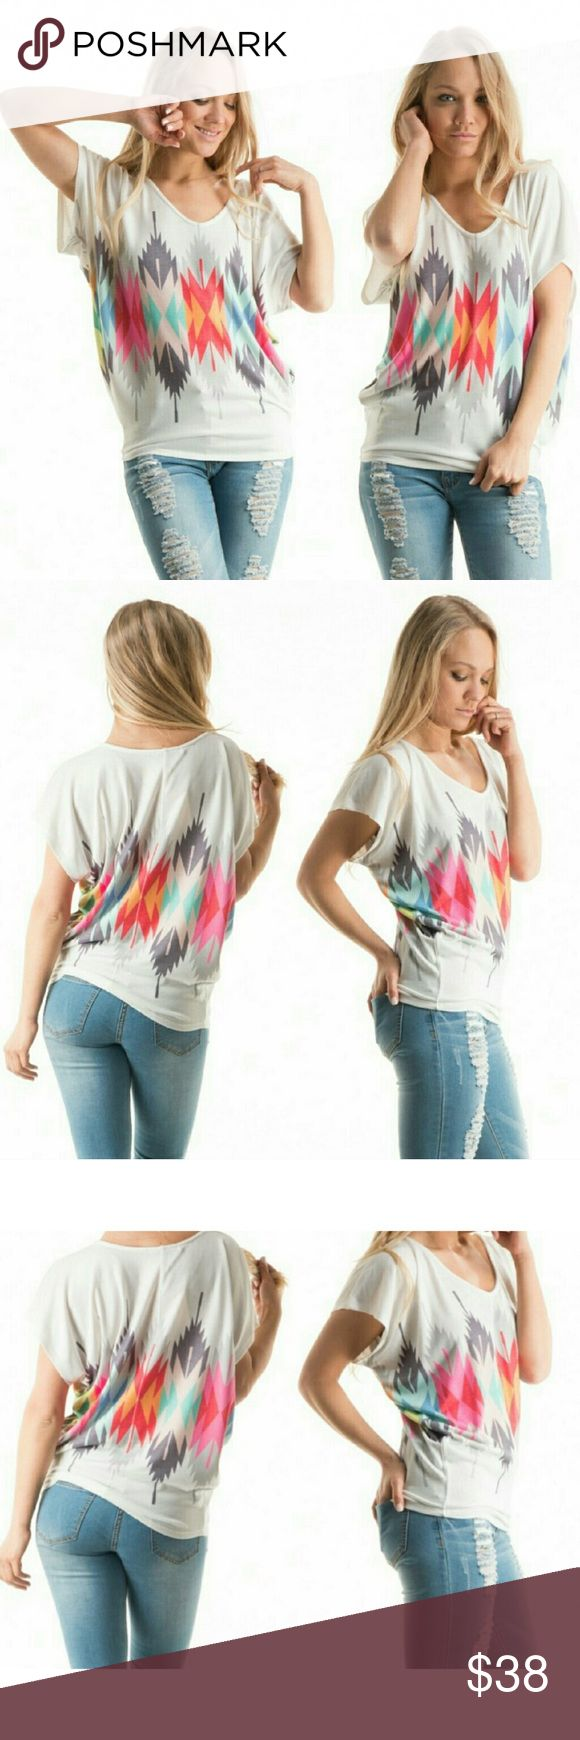 Aztec top Aztec sublimated short dolman sleeve knit top. Made in the USA. Tops Tees - Short Sleeve